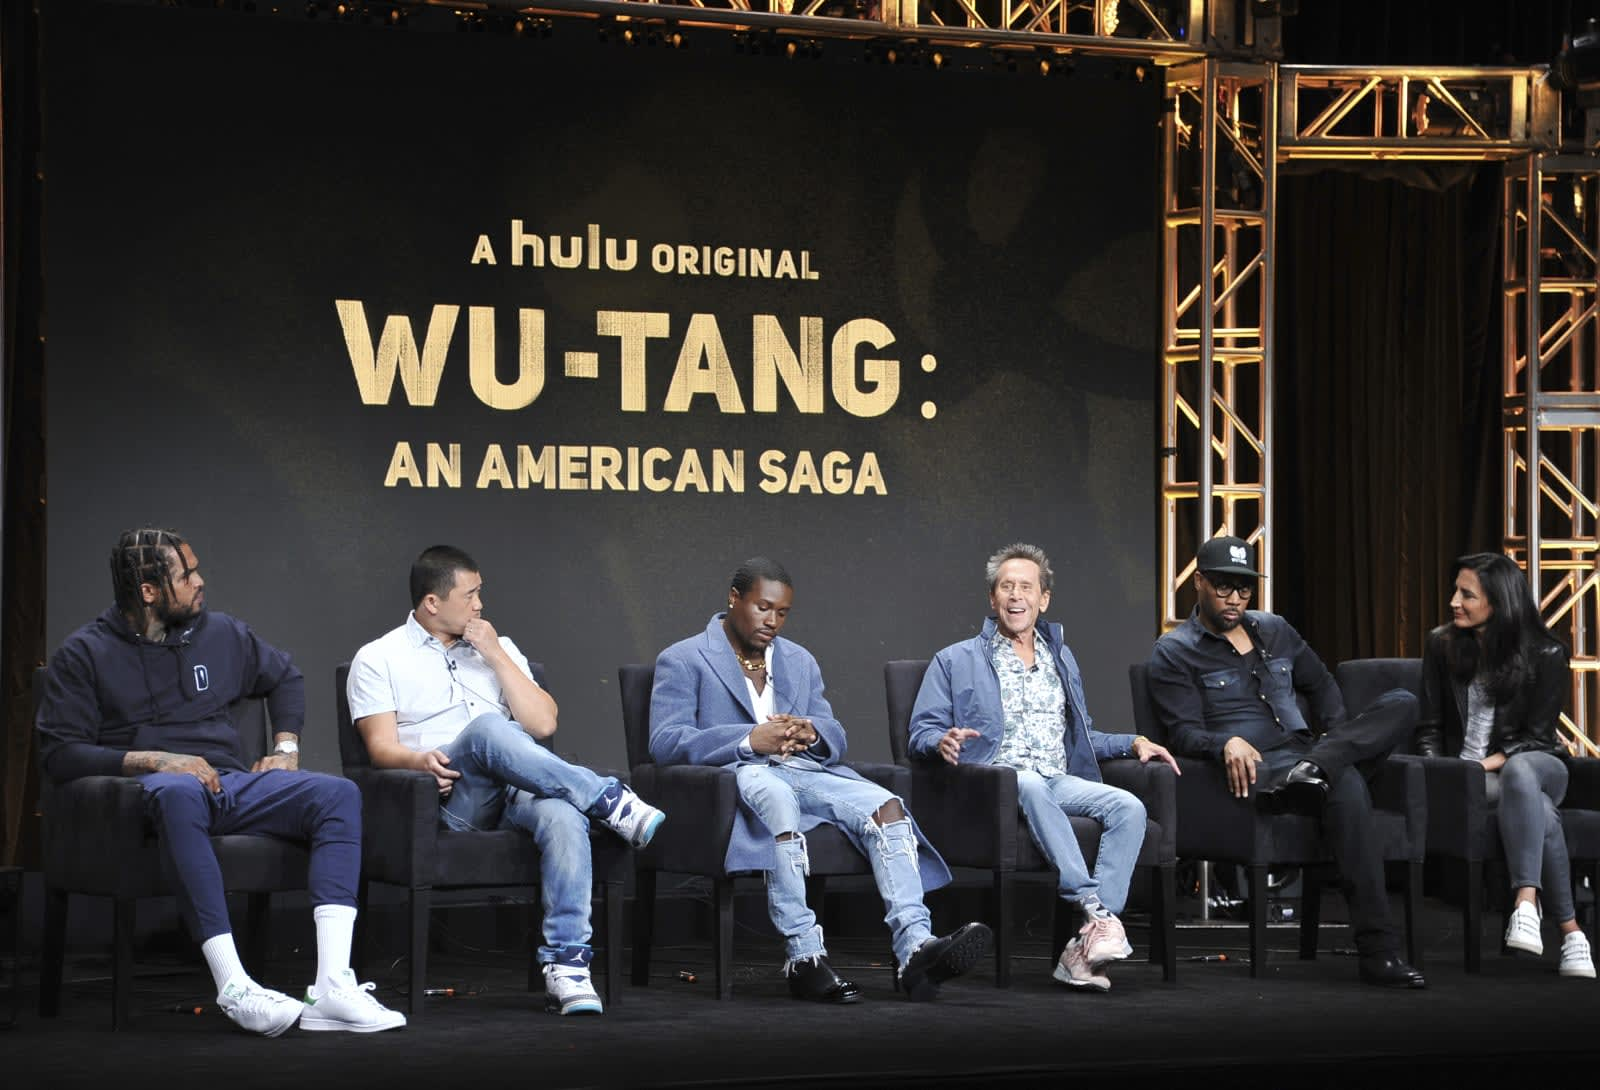 New On Hulu September 2020 Hulu's Wu Tang Clan series debuts September 4th